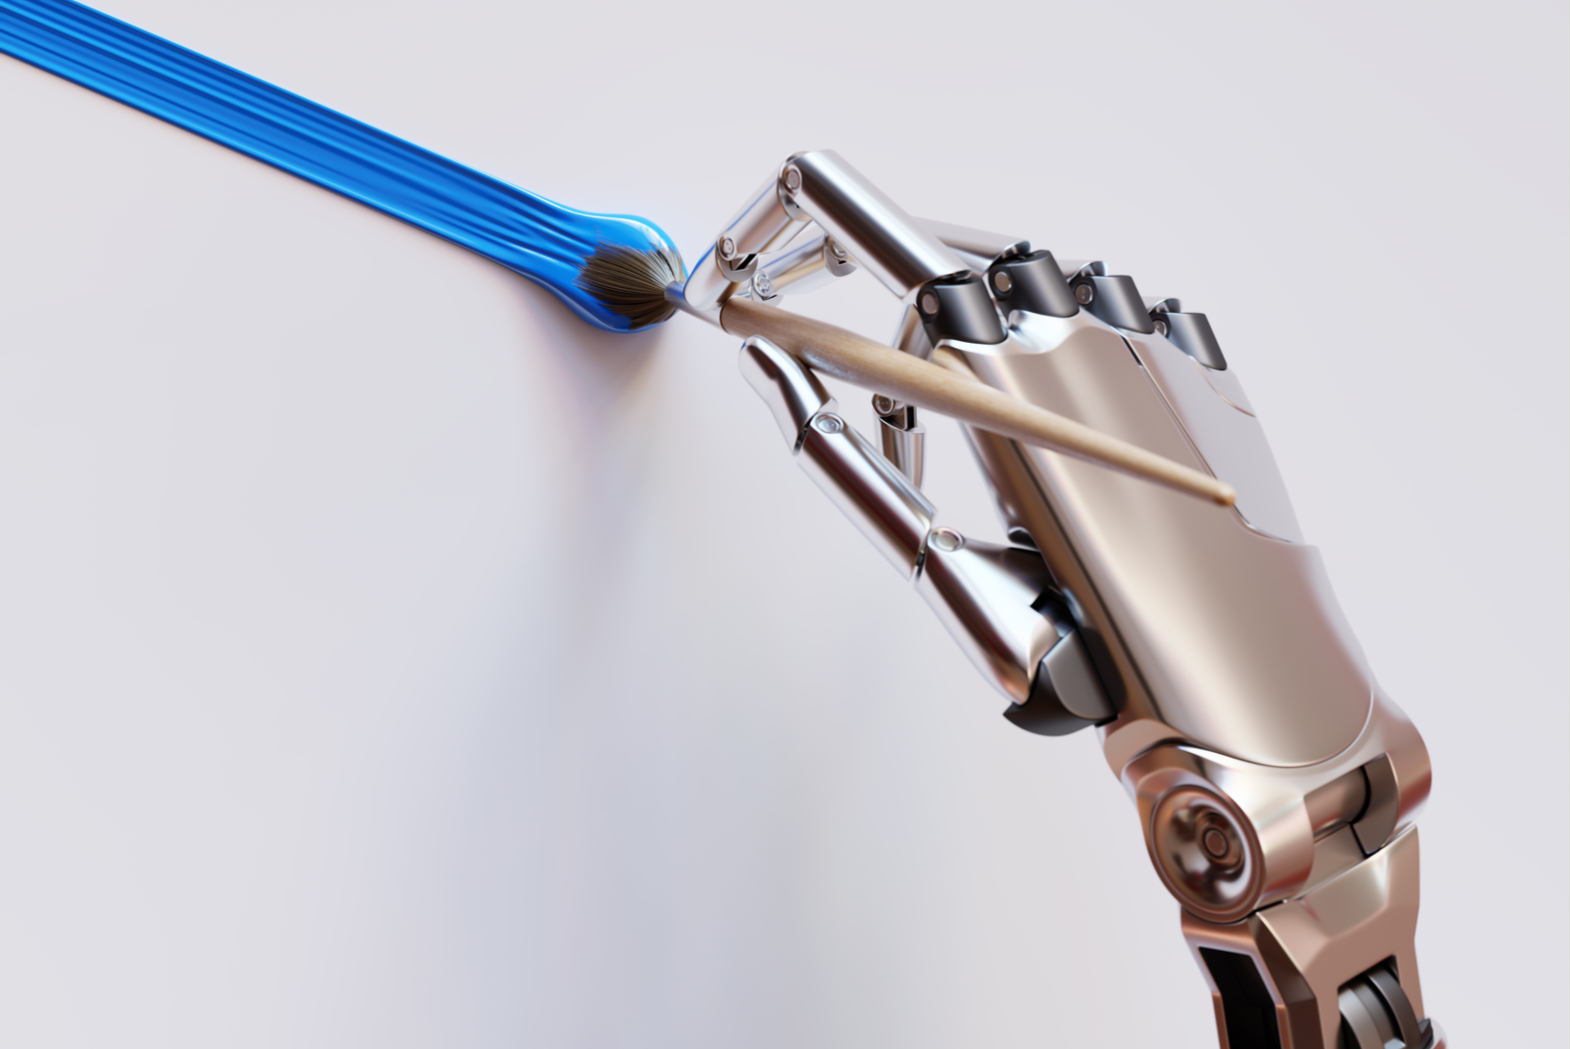 When machines create: Should AI be recognised as an inventor?